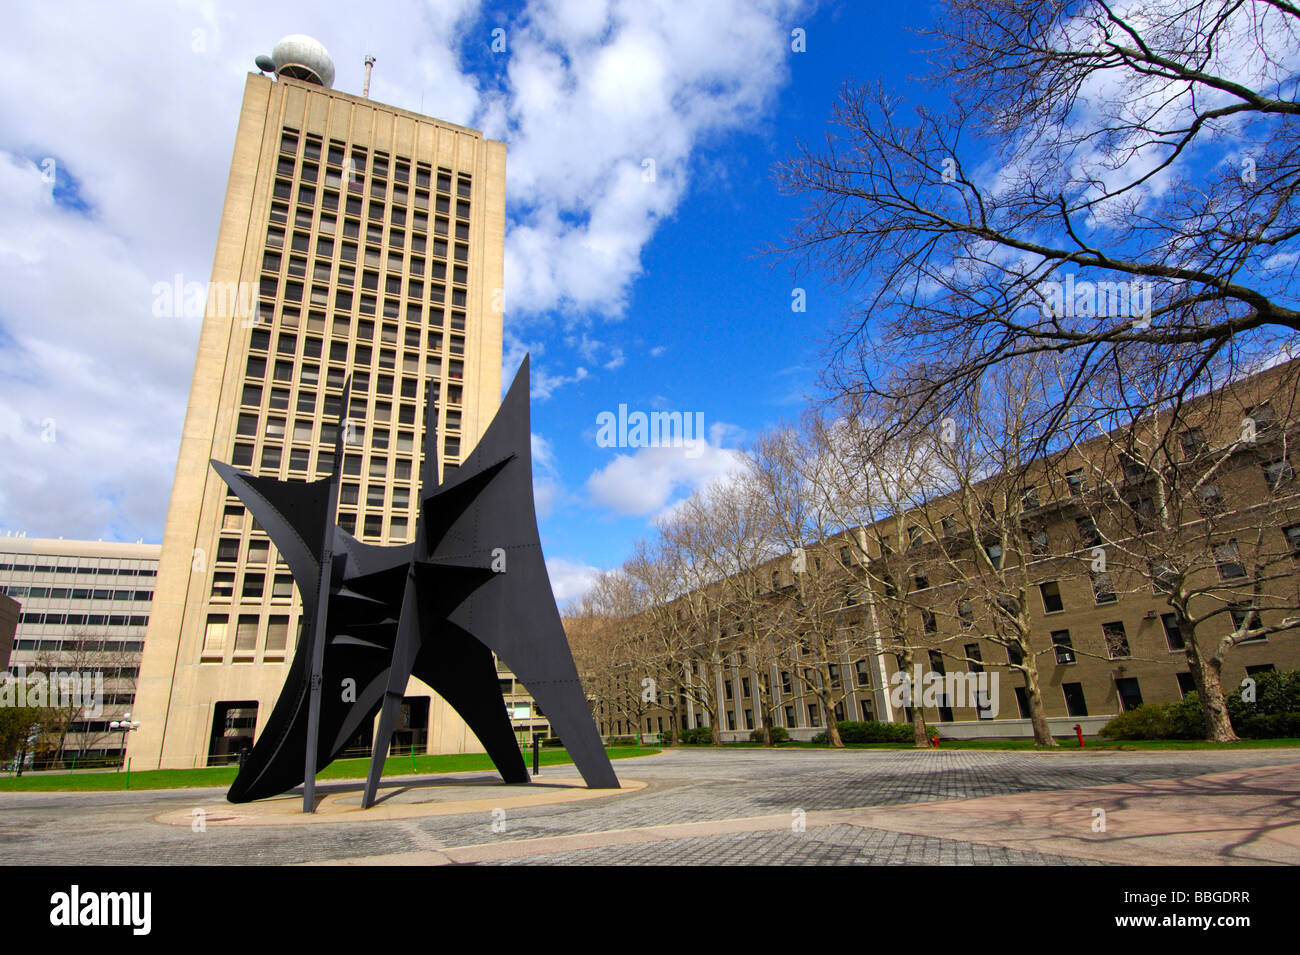 The Big Sail sculpture by Alexander Calder in front of the Green building, building 54, in McDermott Court on the - Stock Image